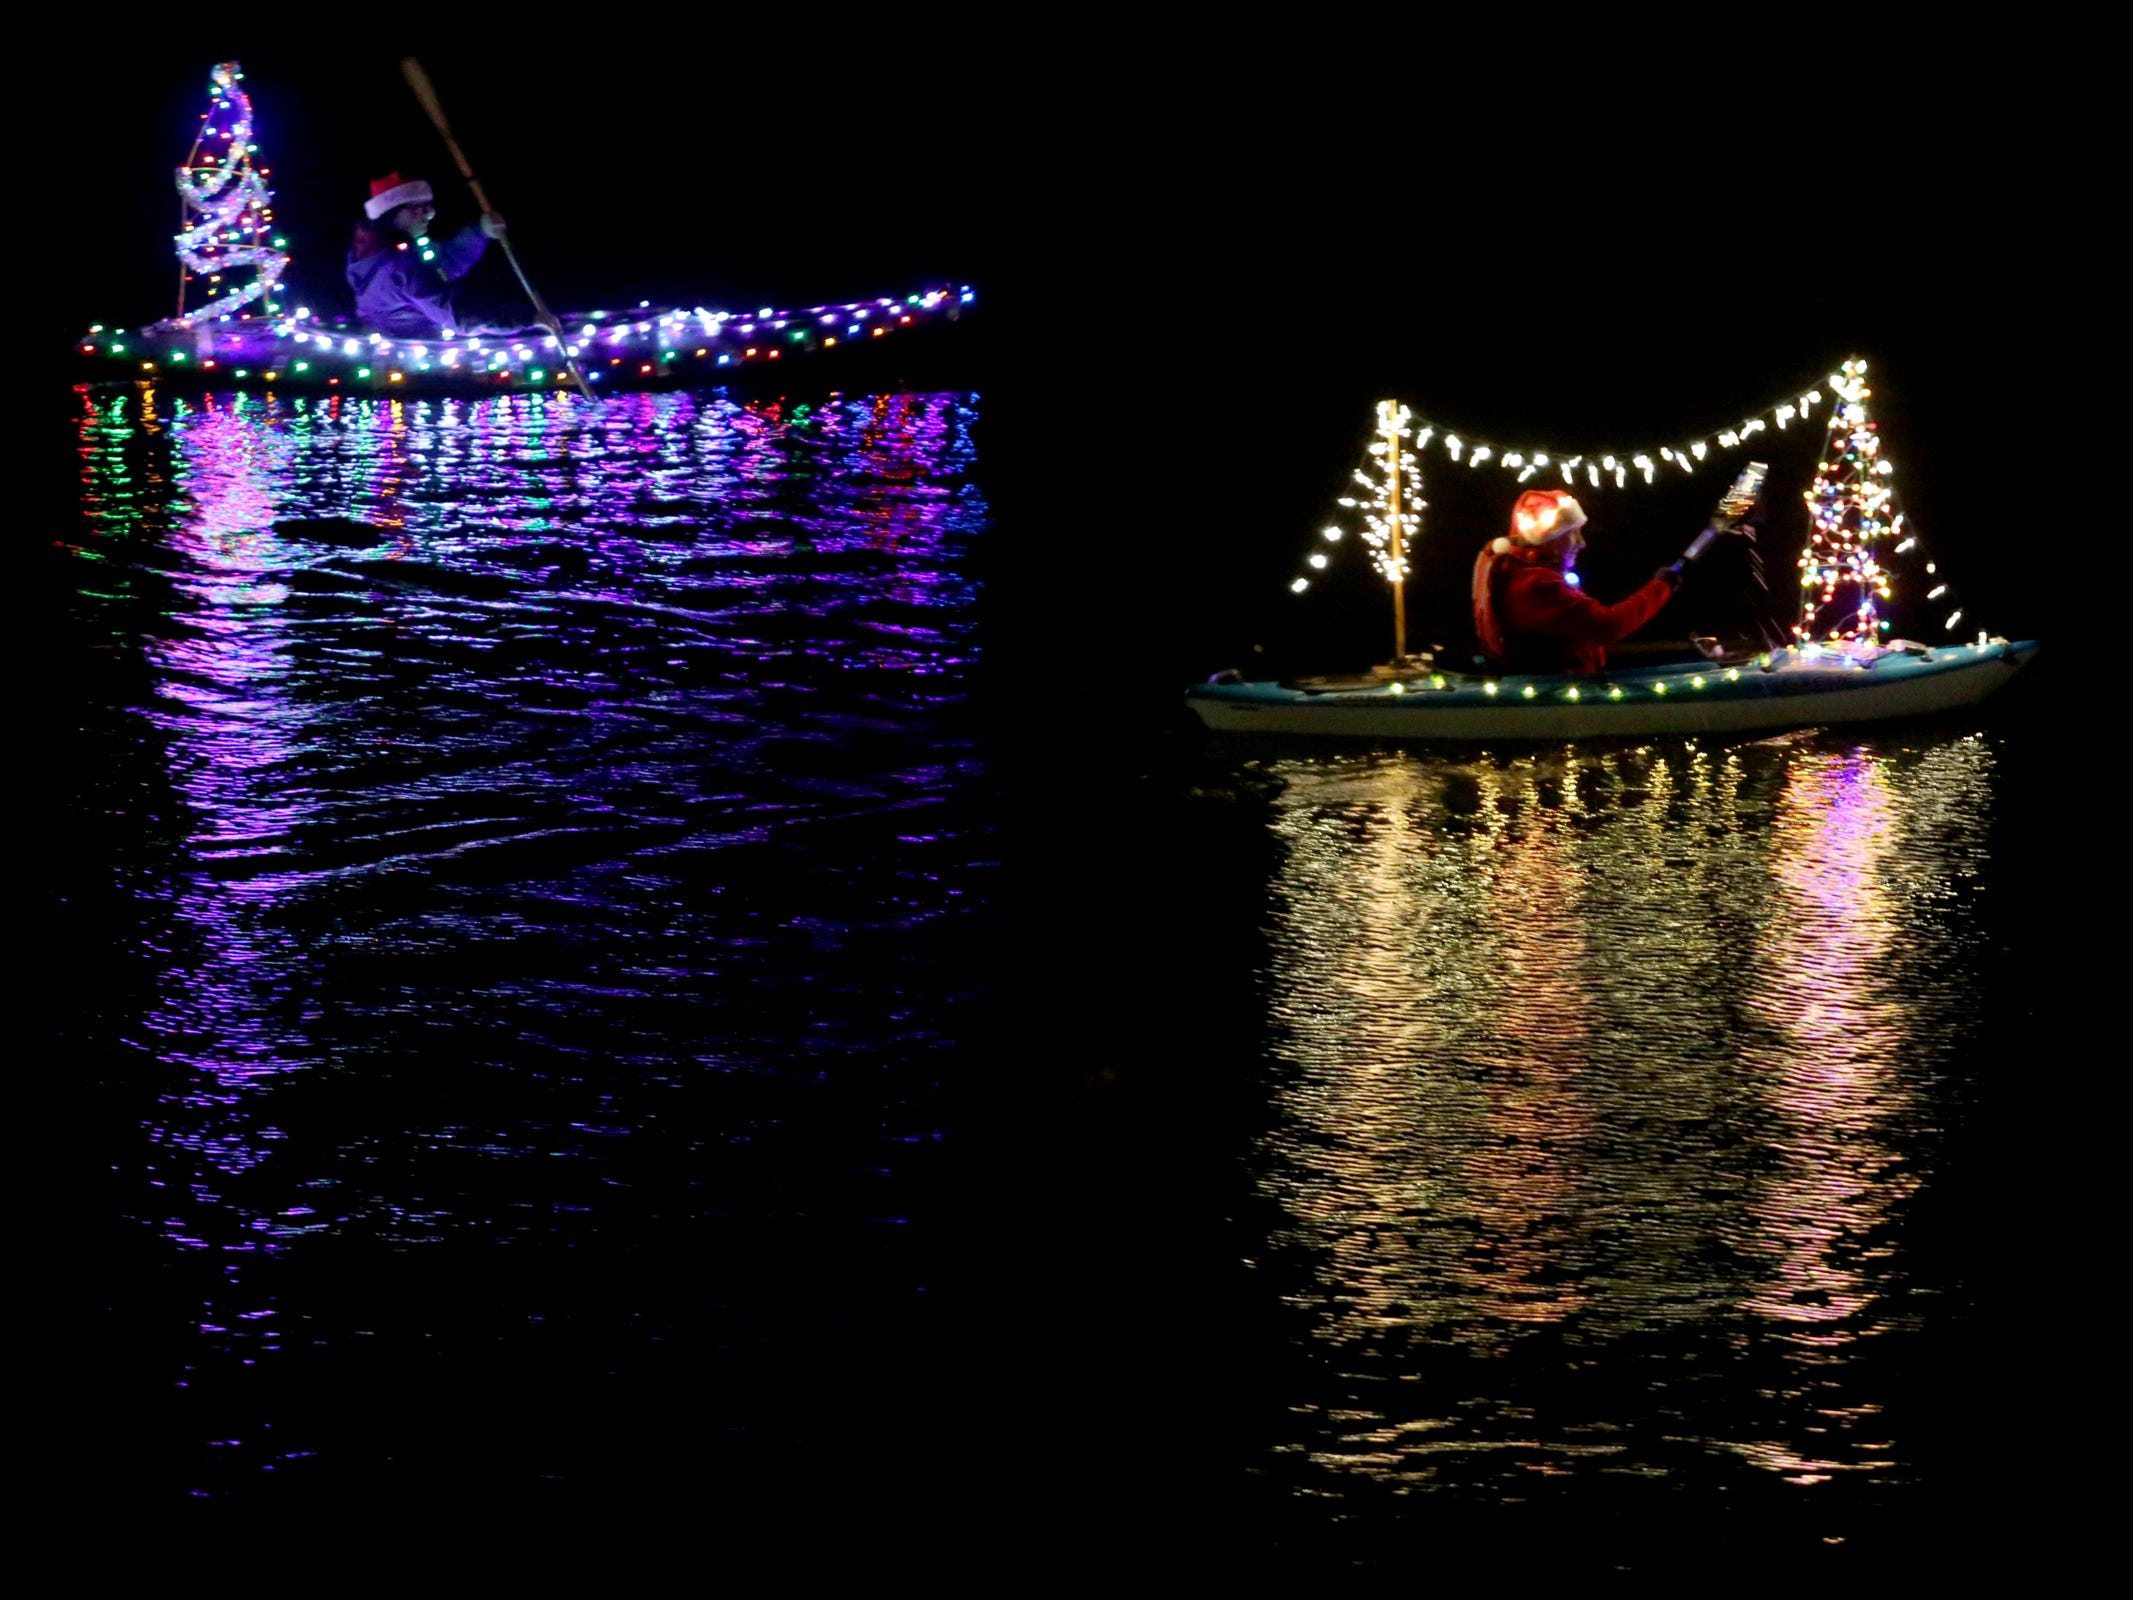 People kayak during the 14th annual Winter Solstice Illuminata Regatta on the Willamette River at Riverfront Park in Salem on Saturday, Dec. 15, 2018.